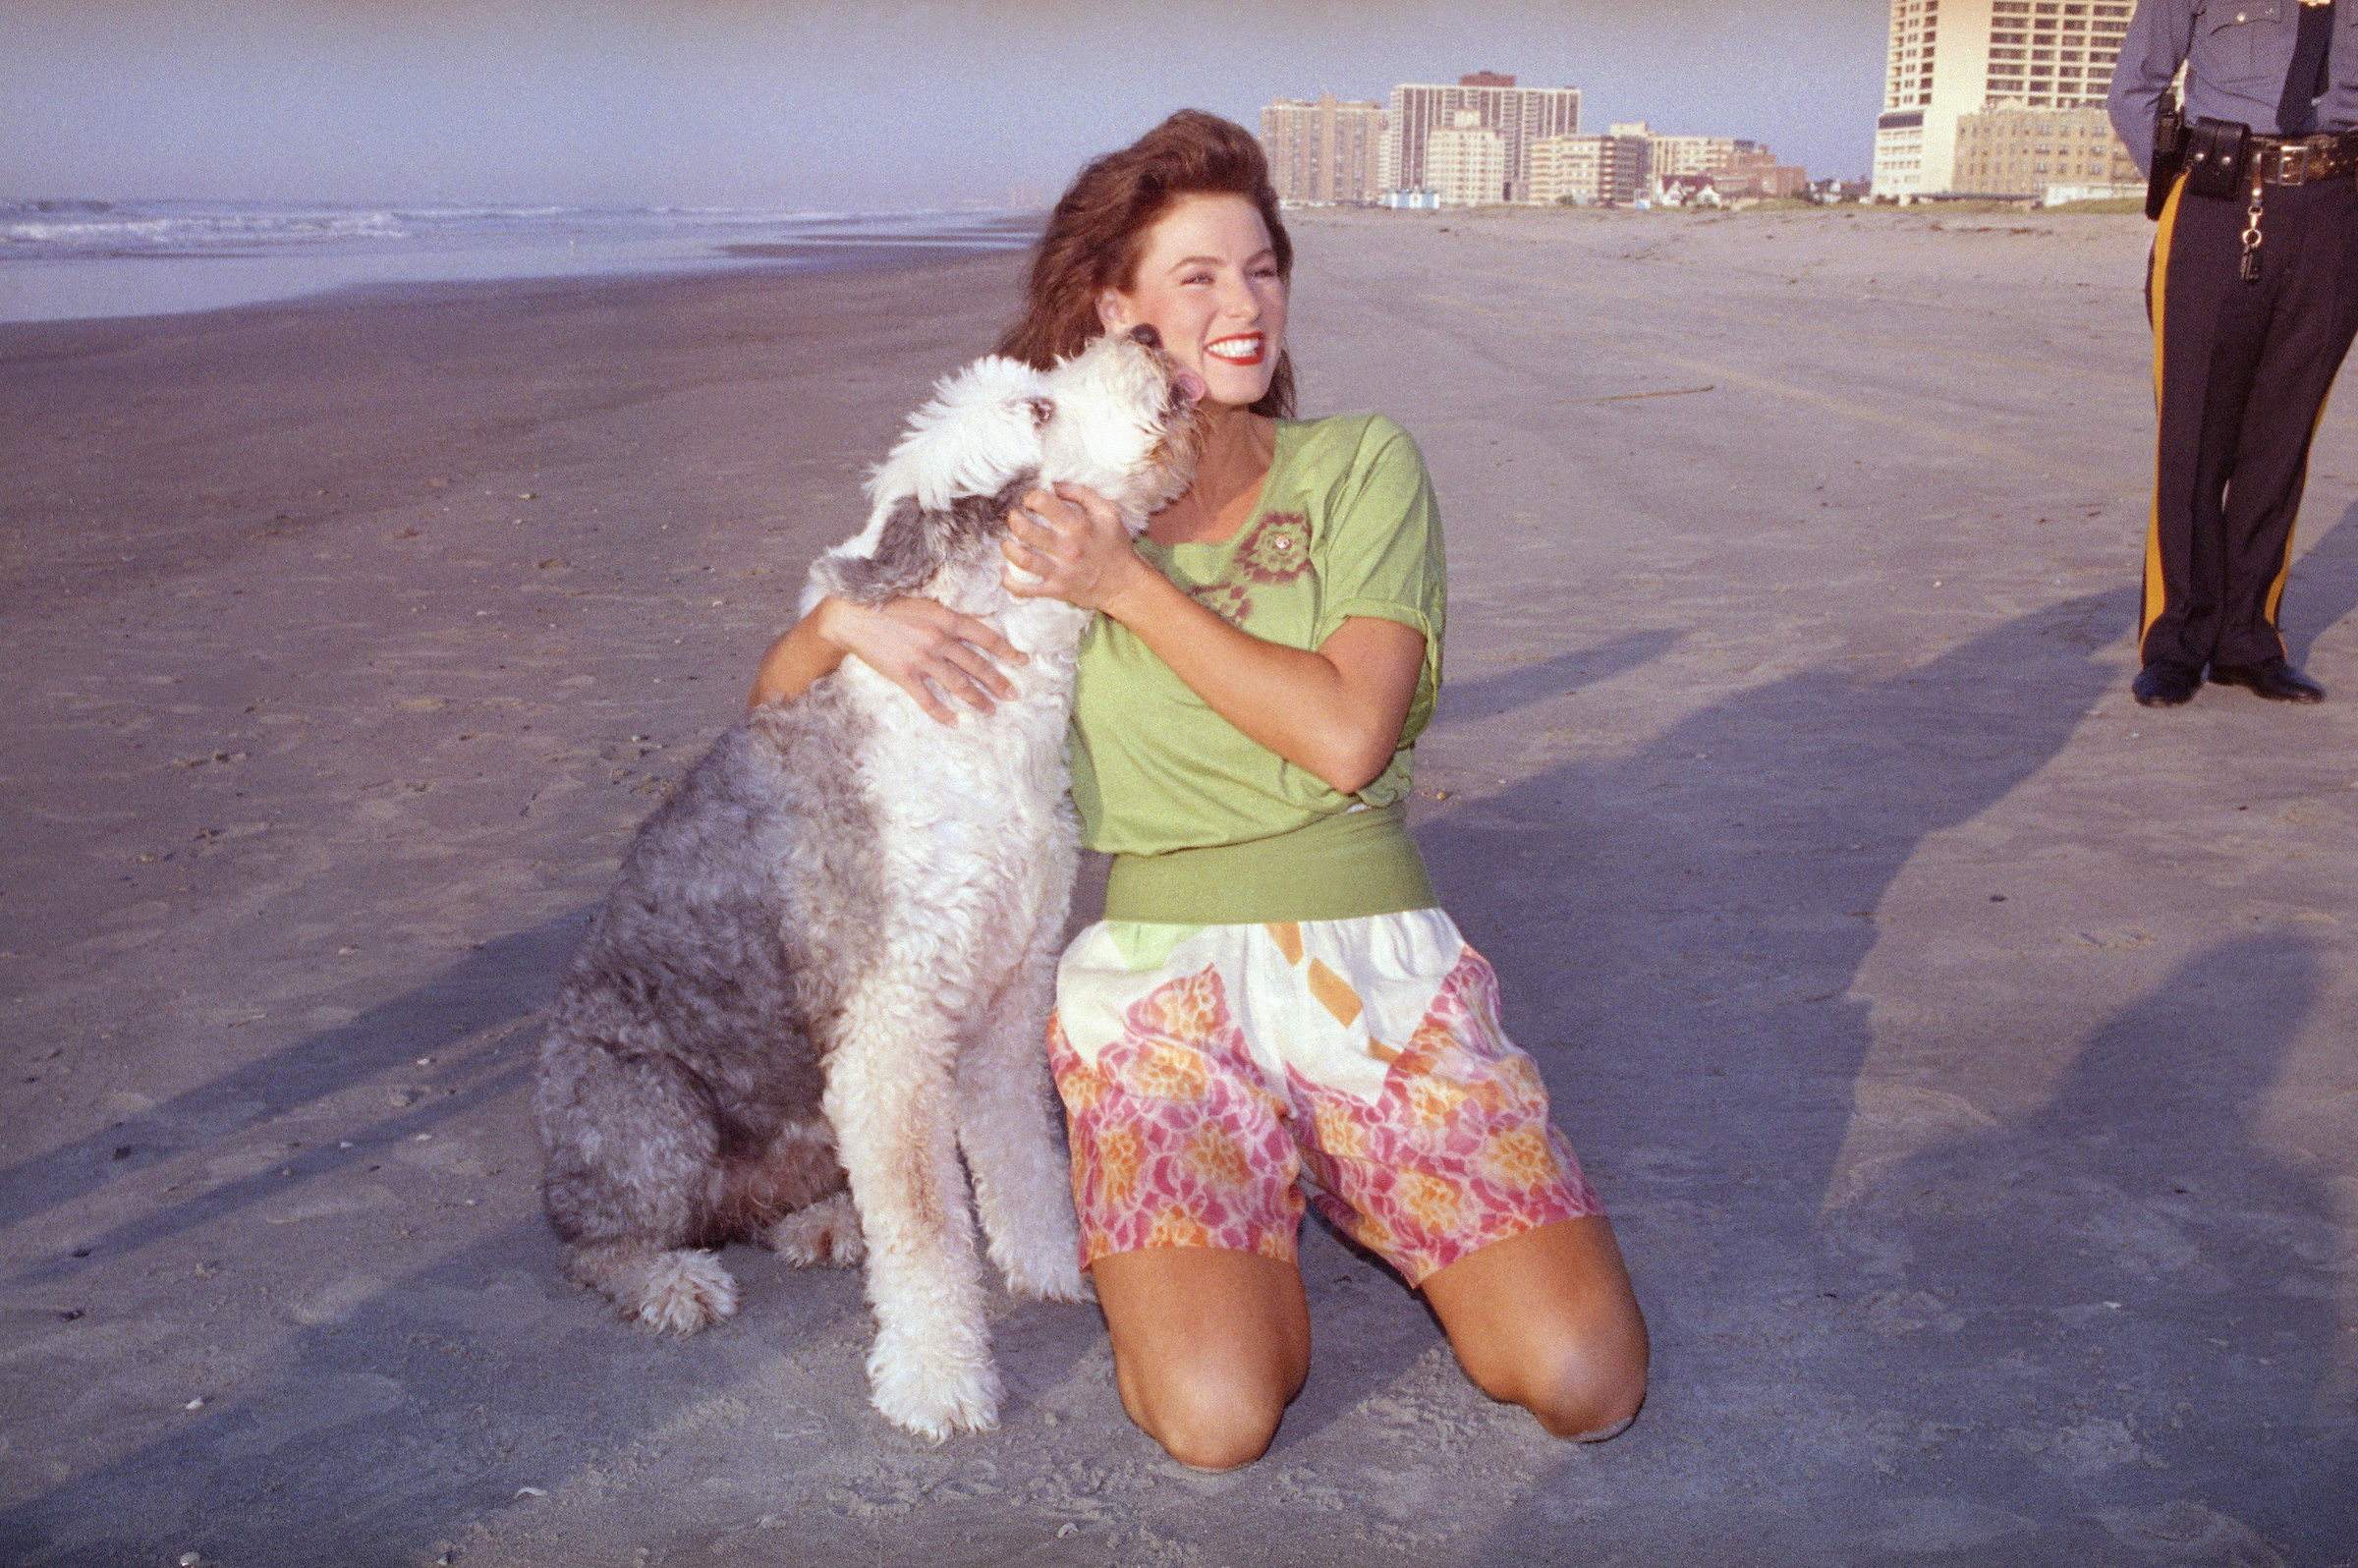 Jade, an Old English sheepdog, licks the face of the newly-crowned Miss America, Carolyn Sapp, during the traditional walk on the beach in Atlantic City, N.J. on Sept, 15, 1991.